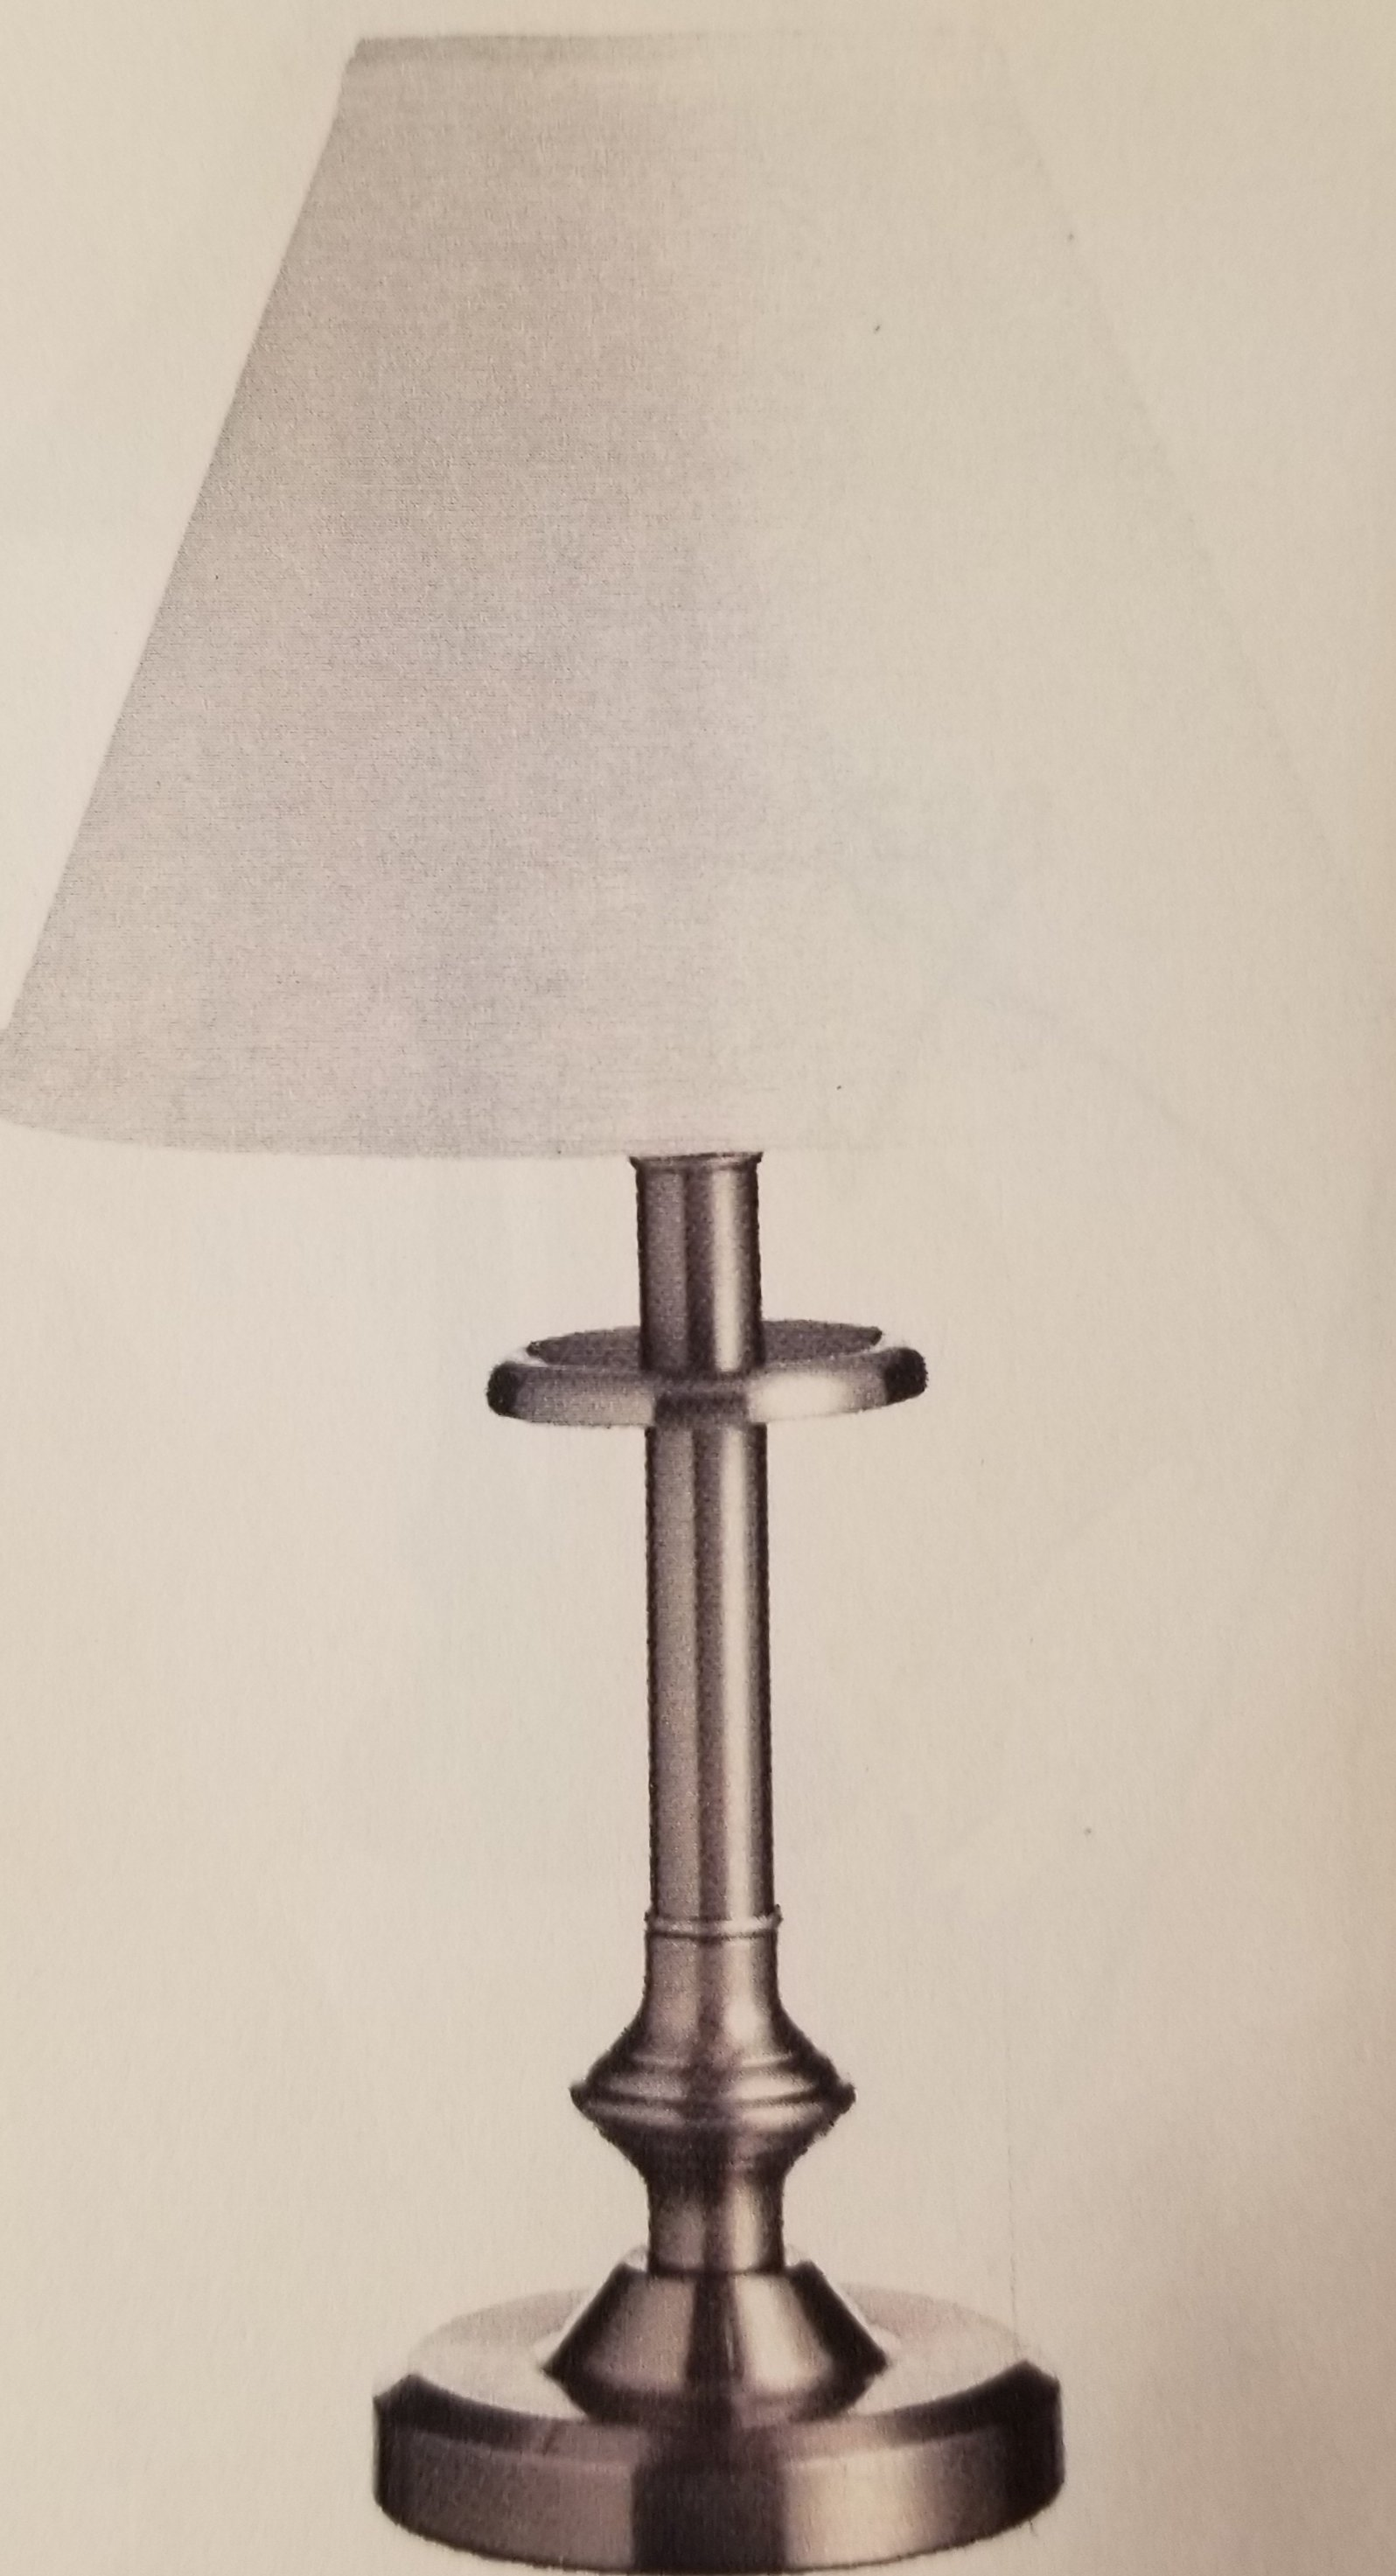 982 Table Lamp Made in Canada Available in Antique Brass,  Brushed Chrome, Black or Antique Bronze Regular Price $105.99 Sale Price $74.99